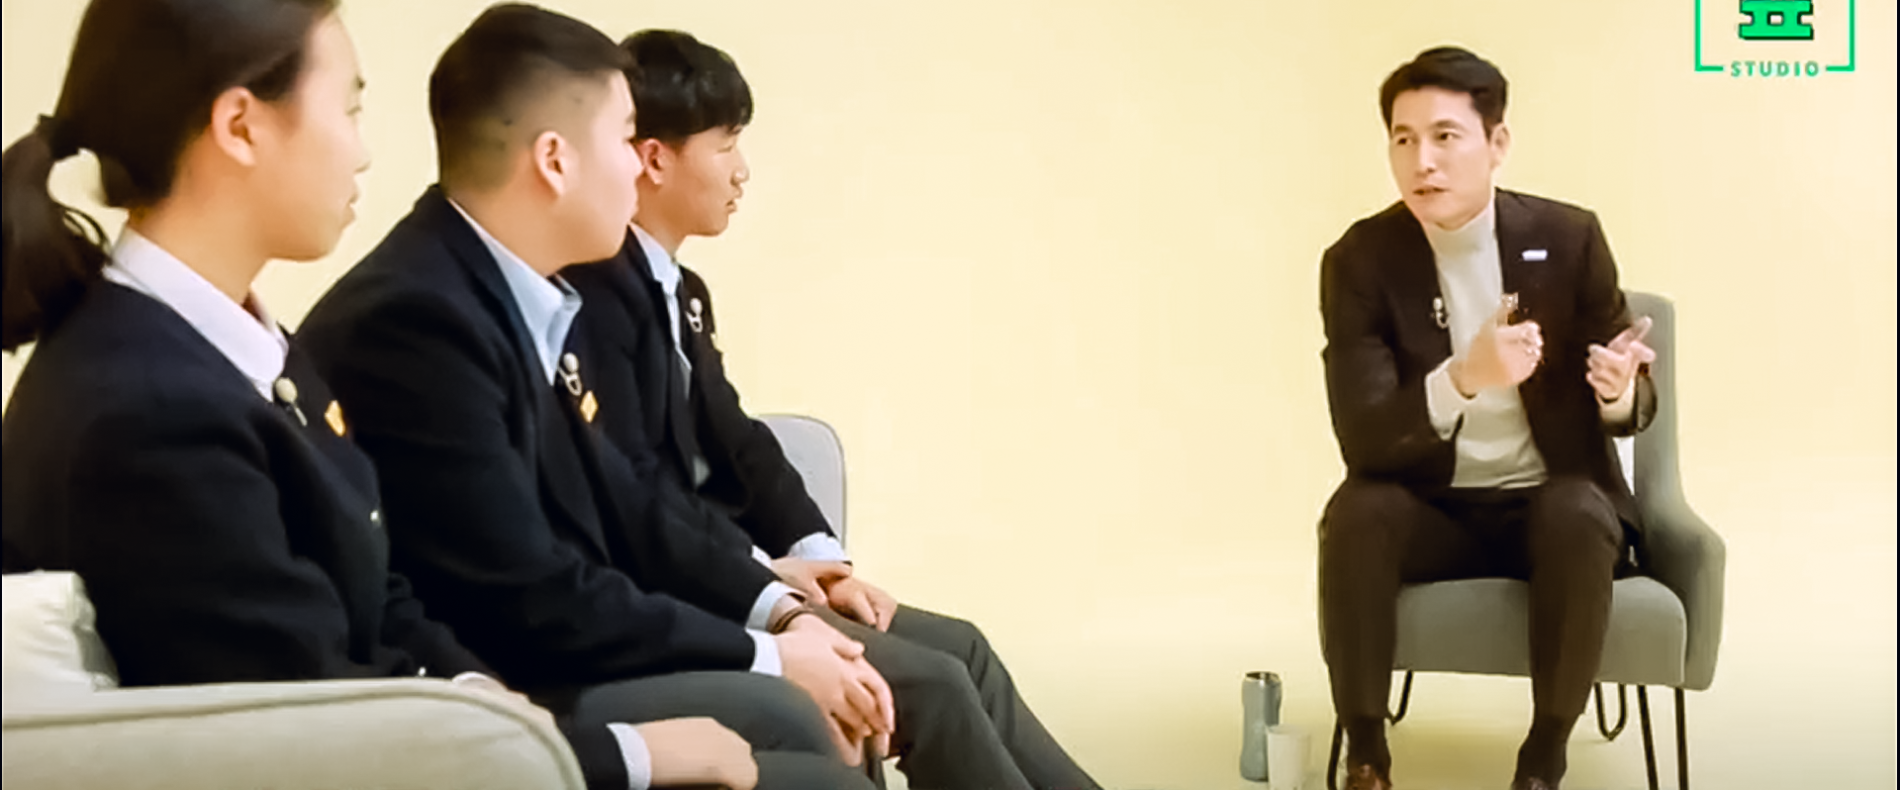 Ambassador Jung Woo Sung with the YOUNG GENERATION